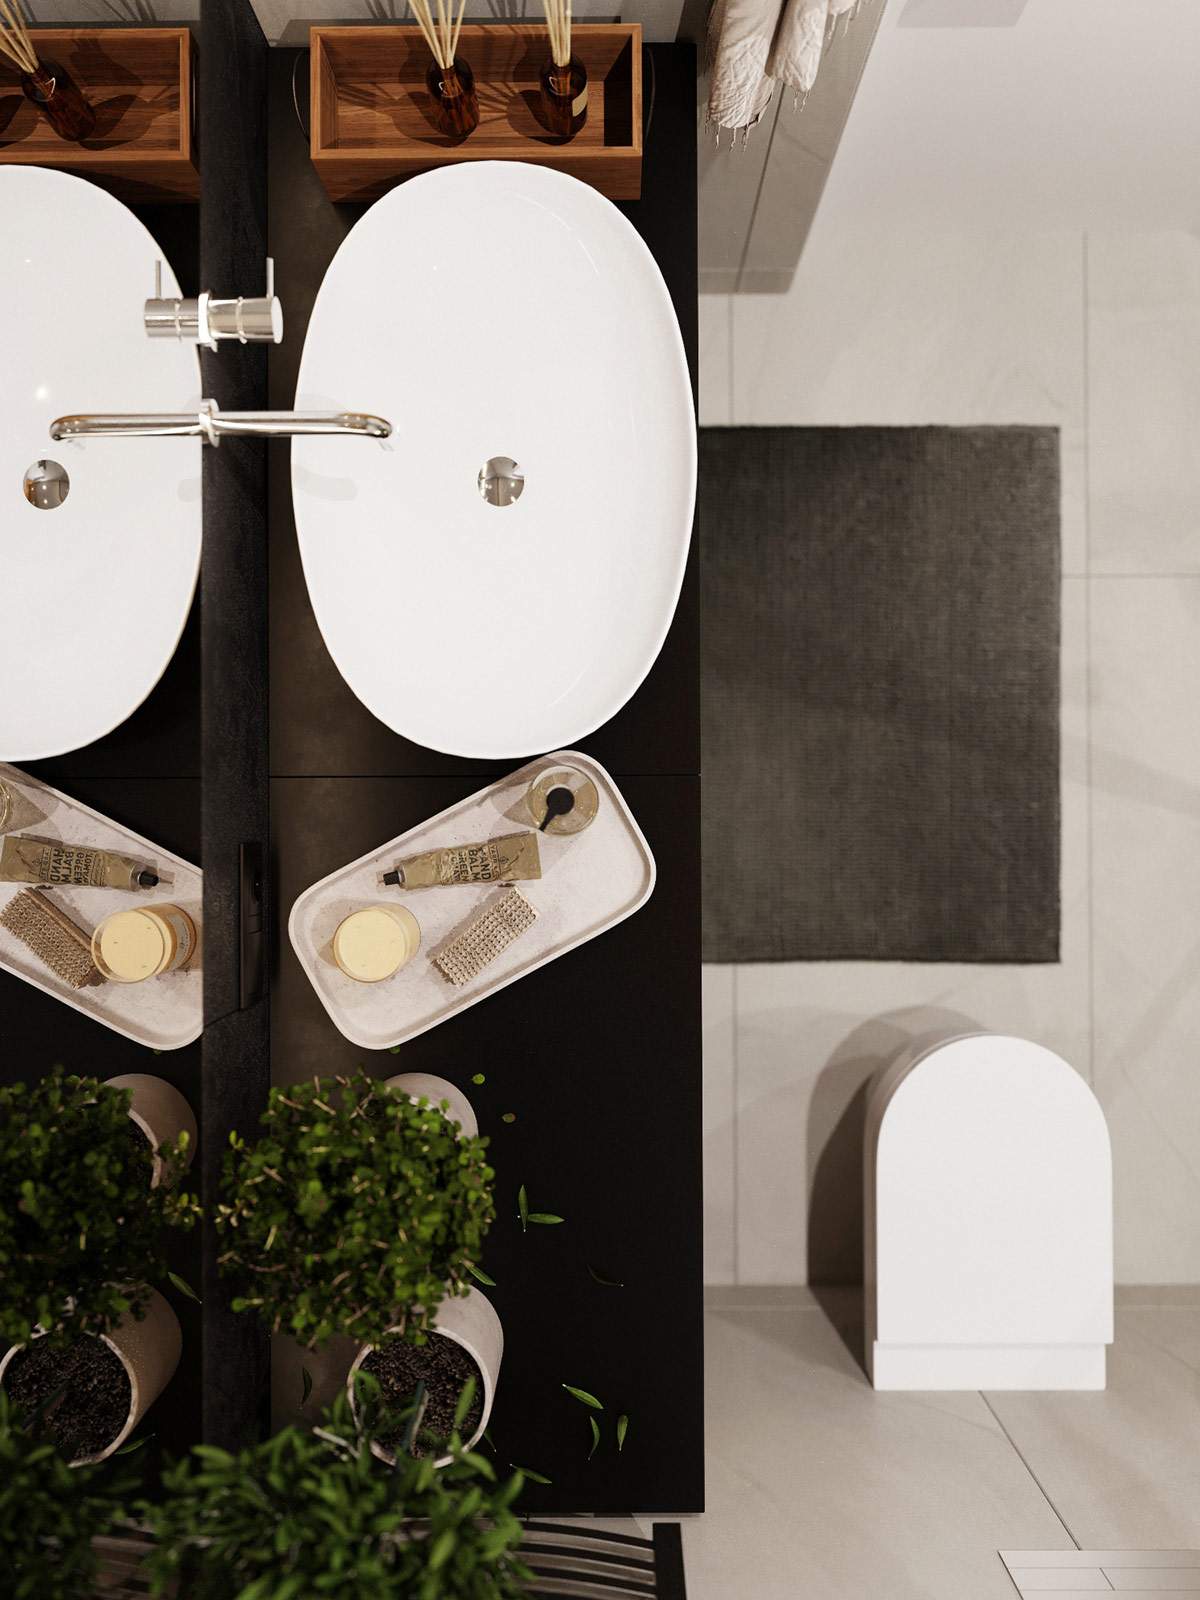 luxurious-modern-bathroom-design-with-vessel-sink-and-plants